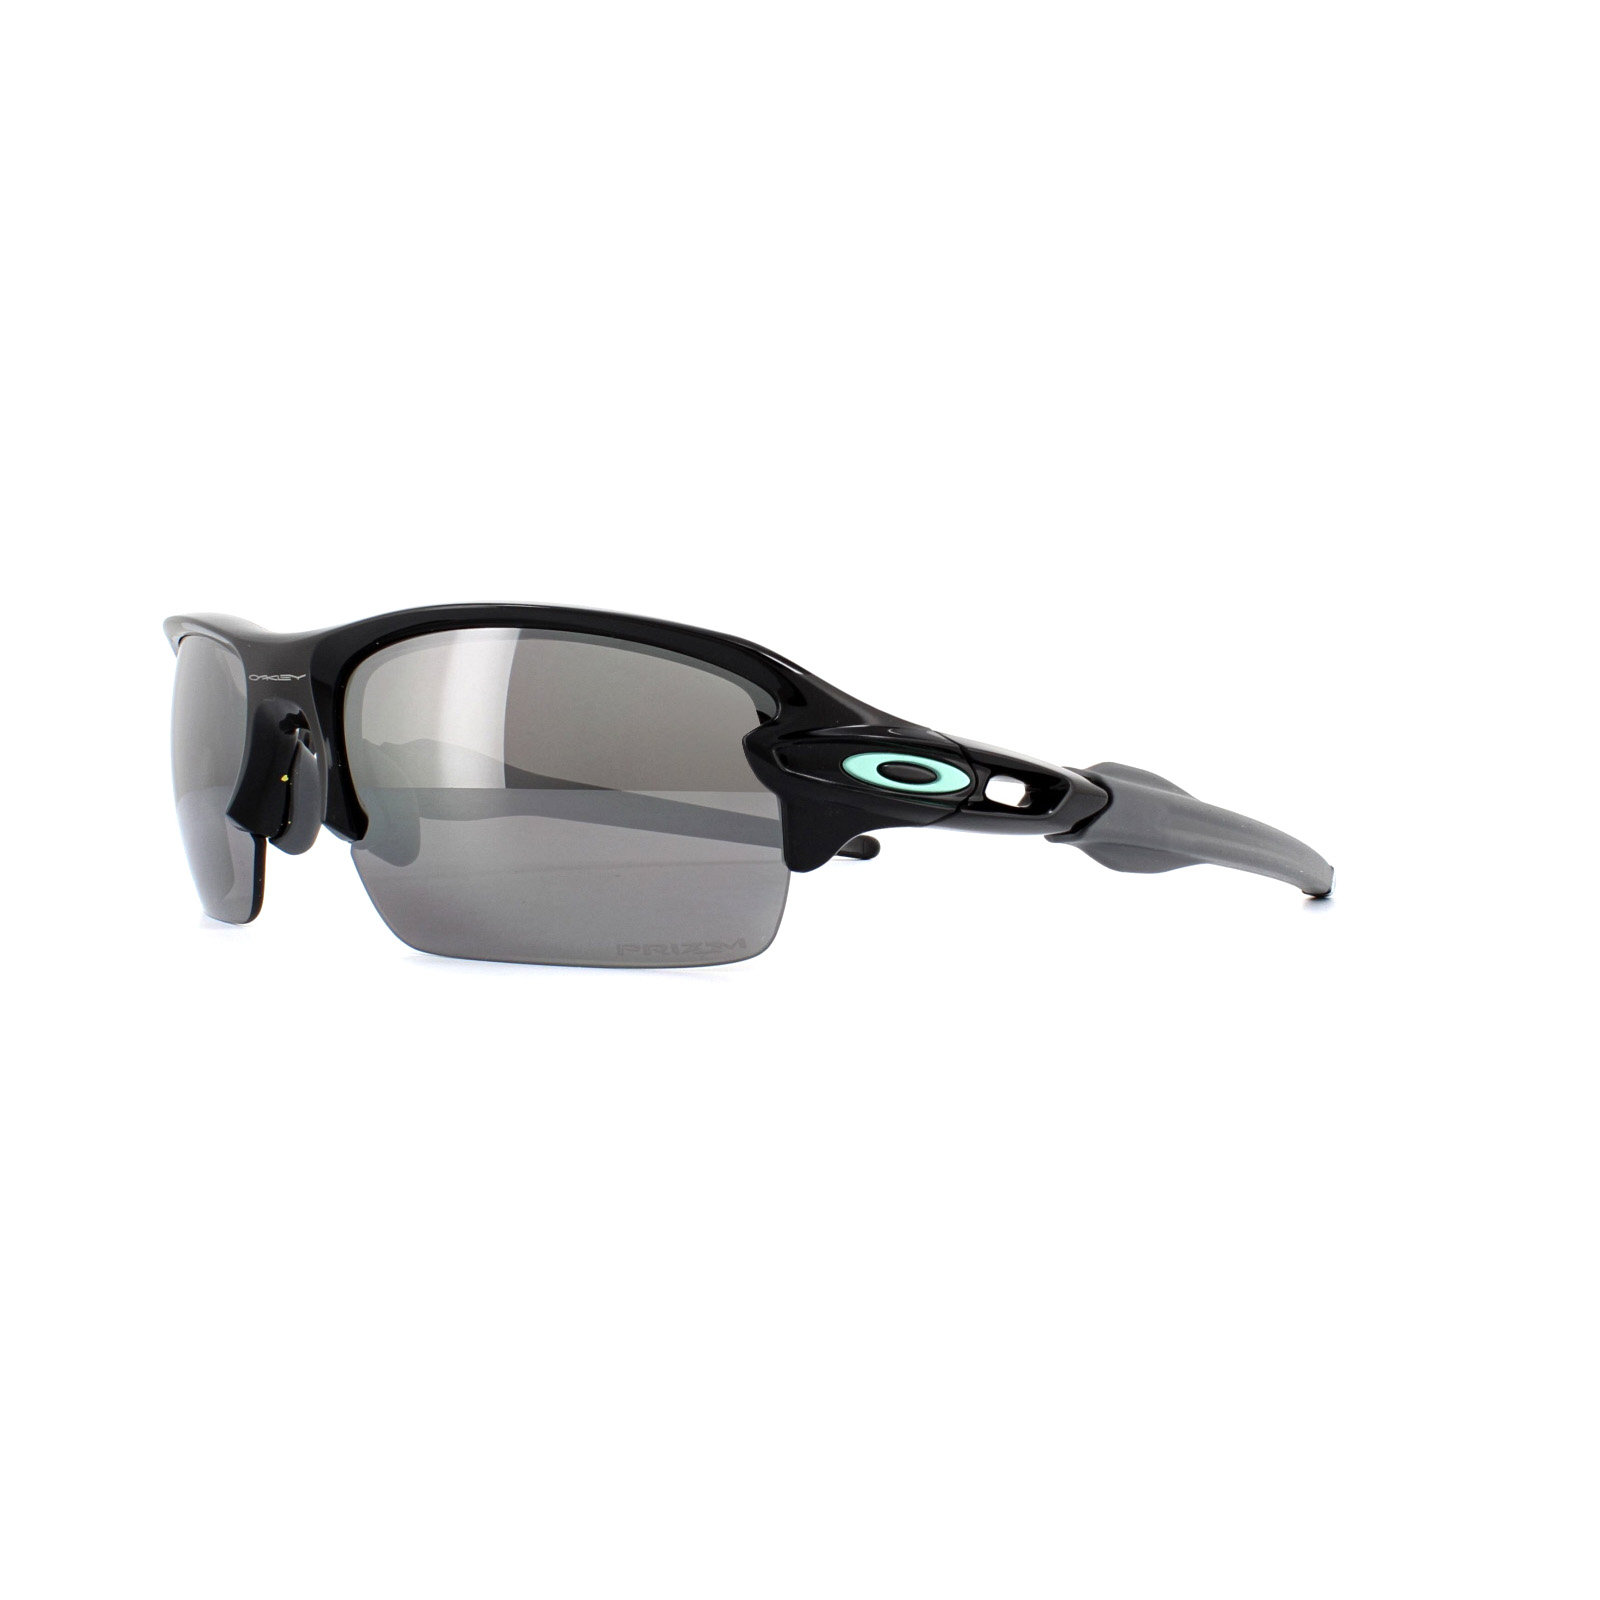 e3b628d0bd Sentinel Oakley Sunglasses Flak XS Youth OJ9005-06 Pol White Prizm Deep  Water Polarized